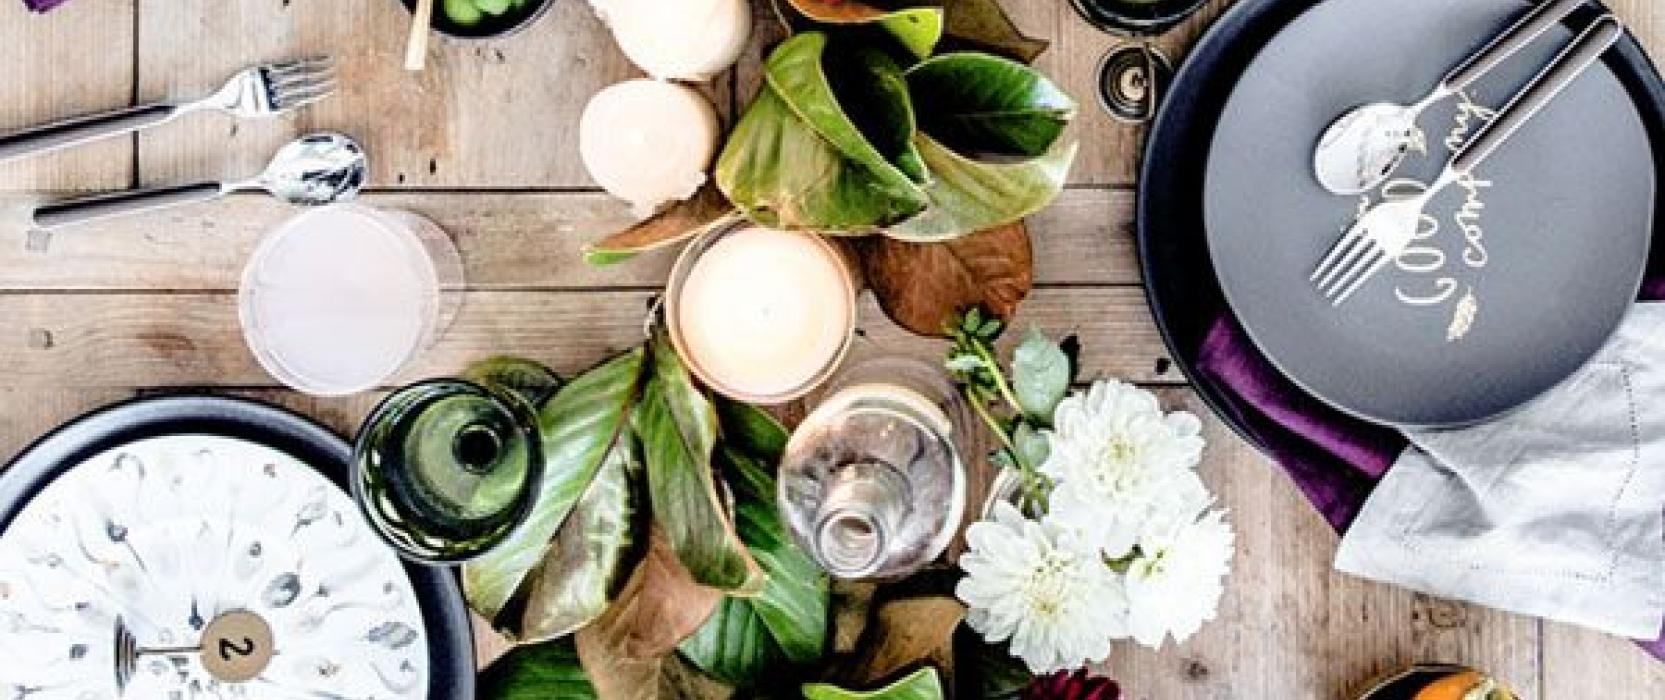 Fall Tablescape Ideas We Love